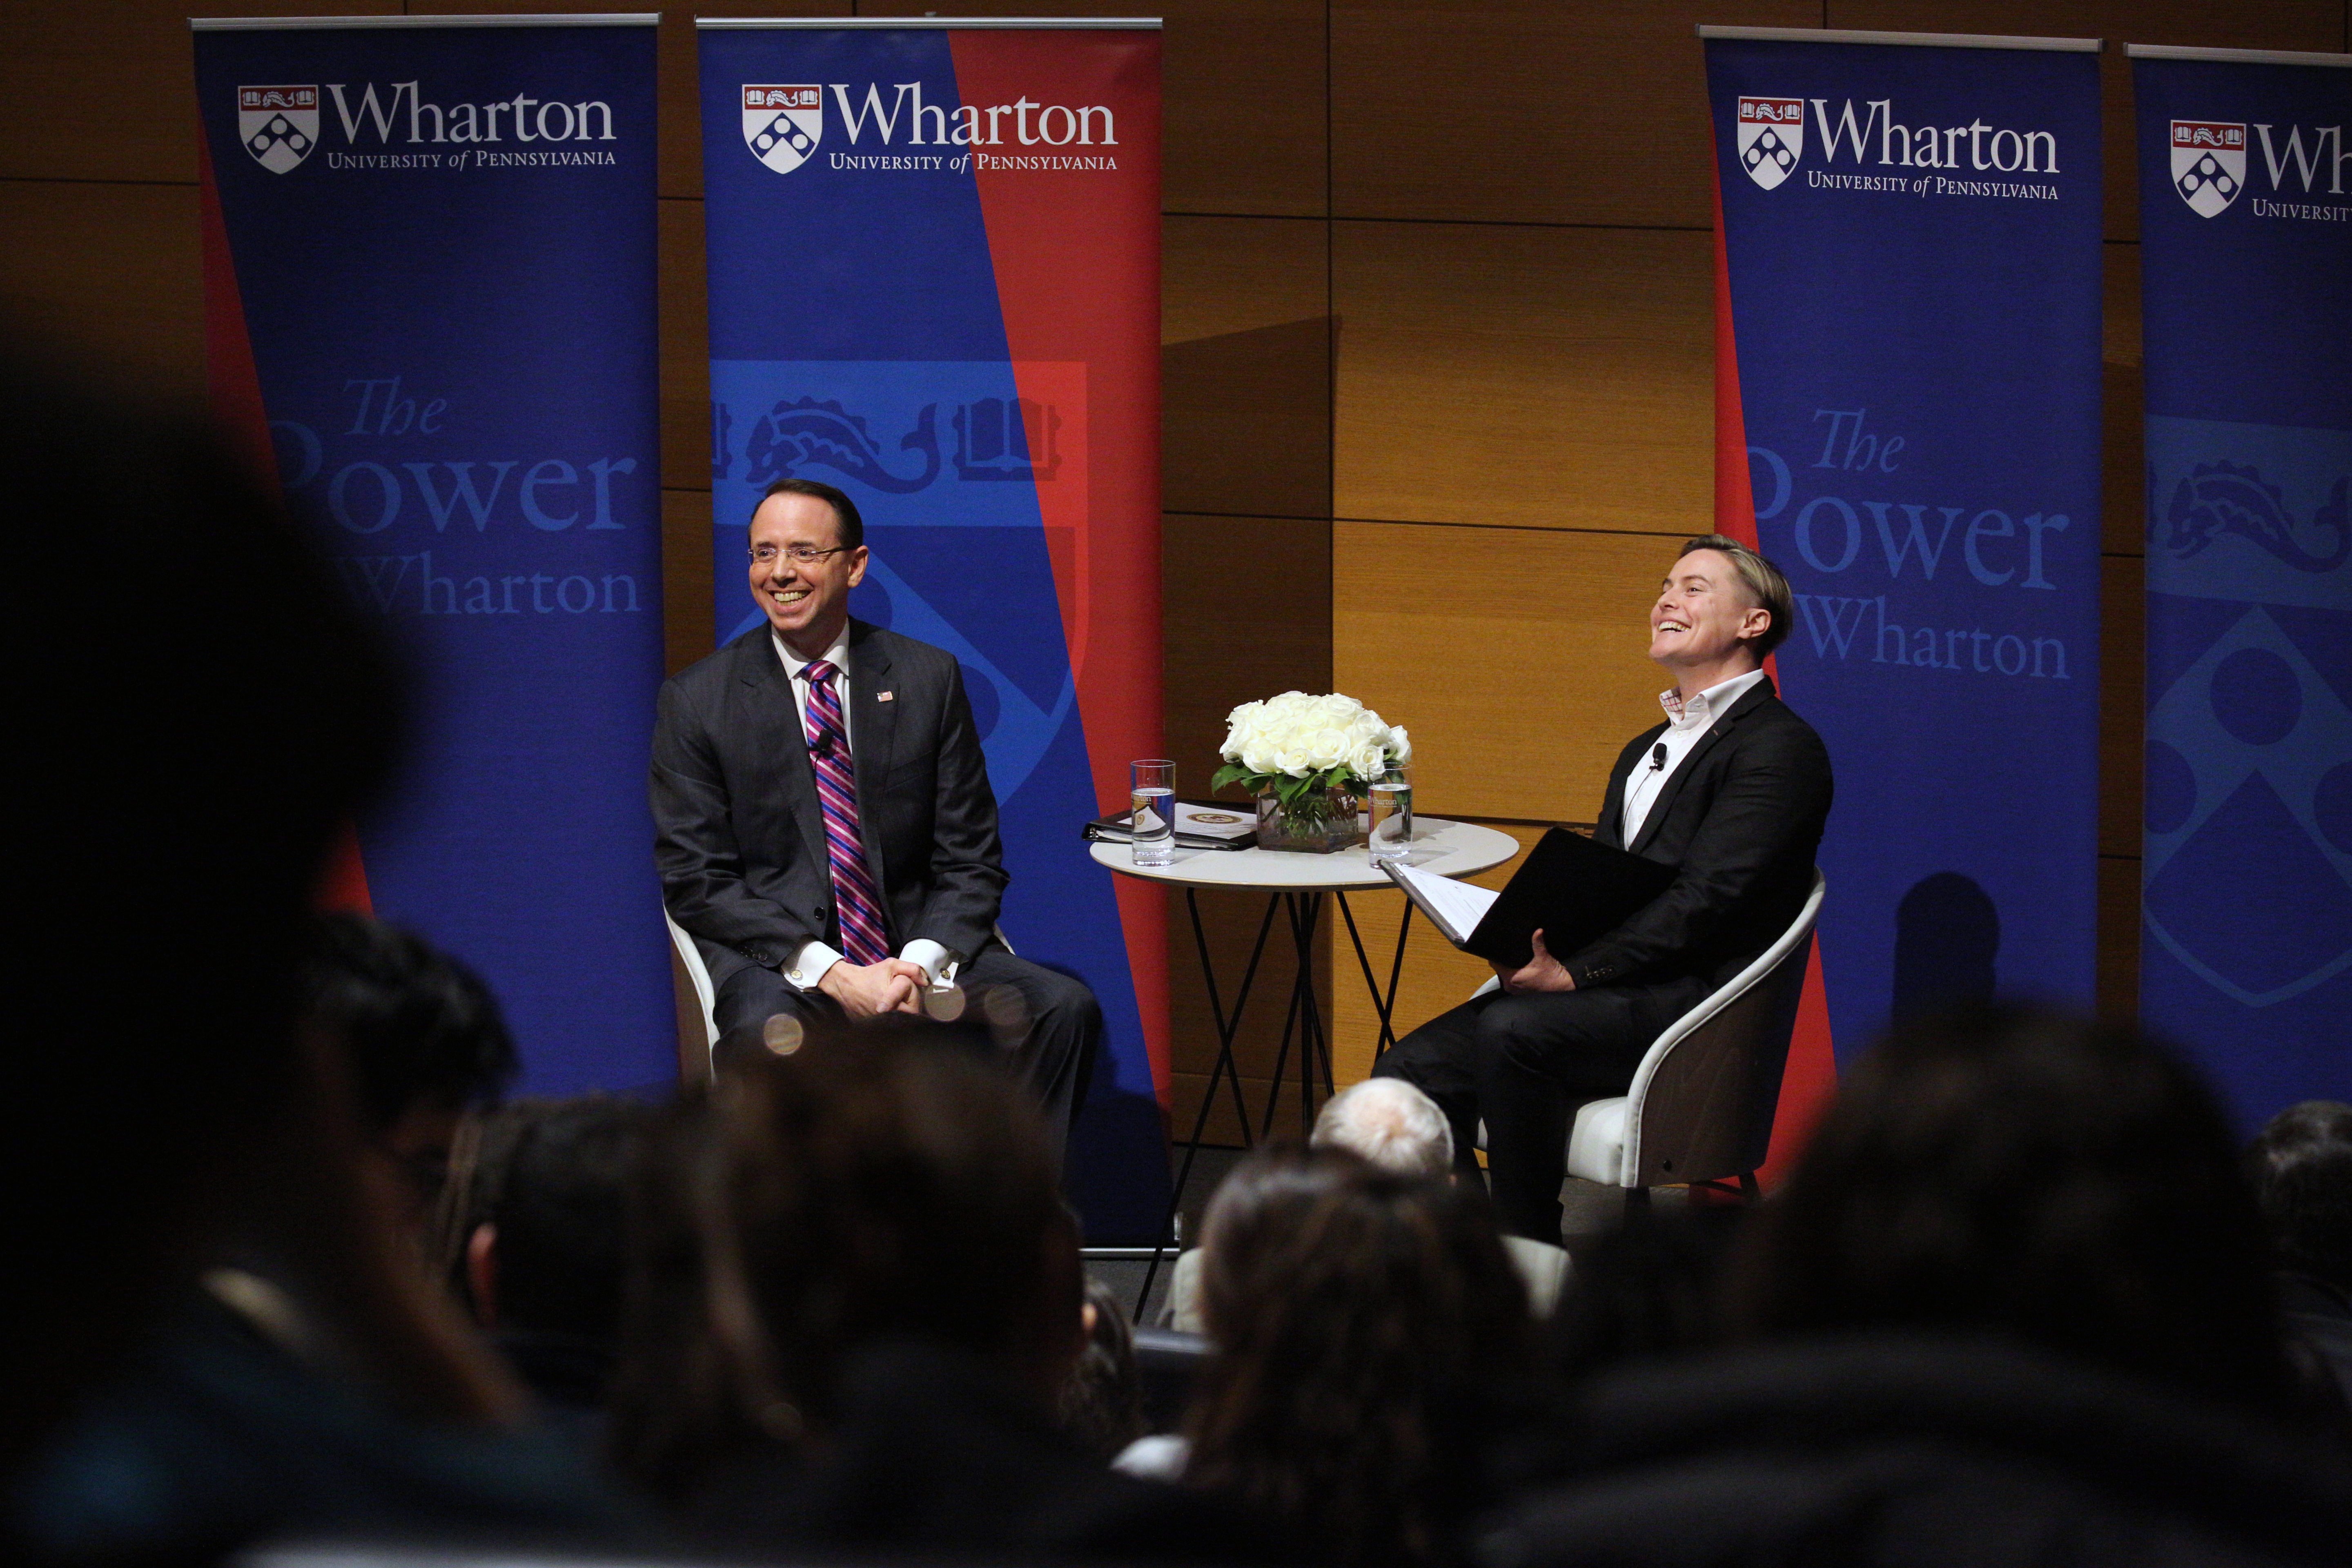 Rod Rosenstein and Amanda Shanor sit on stage, talking to an audience with Wharton signs behind them